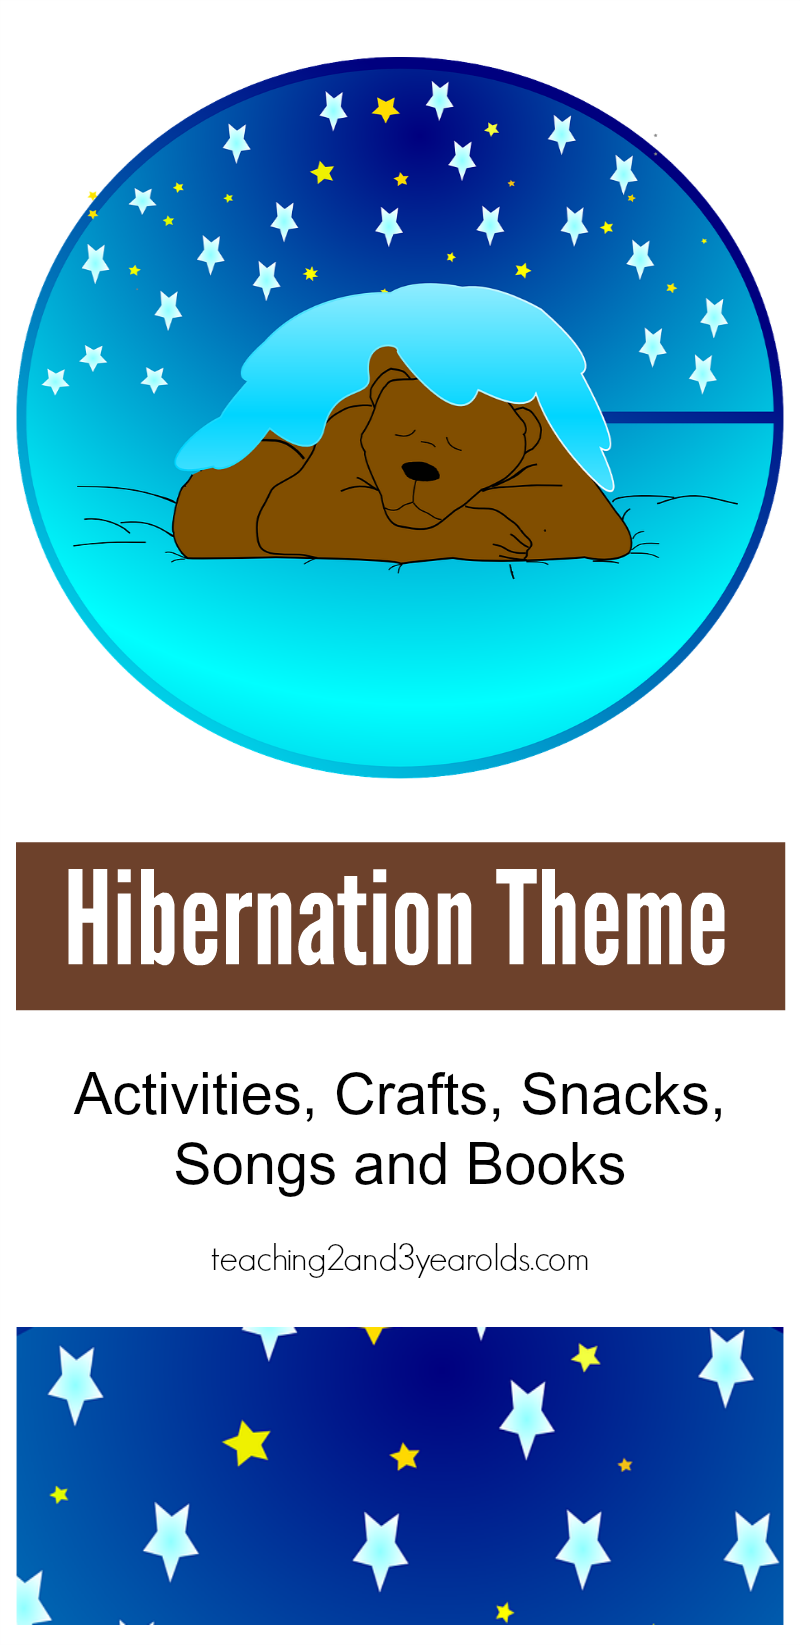 Bears Theme Preschool Lesson Plans and Activities